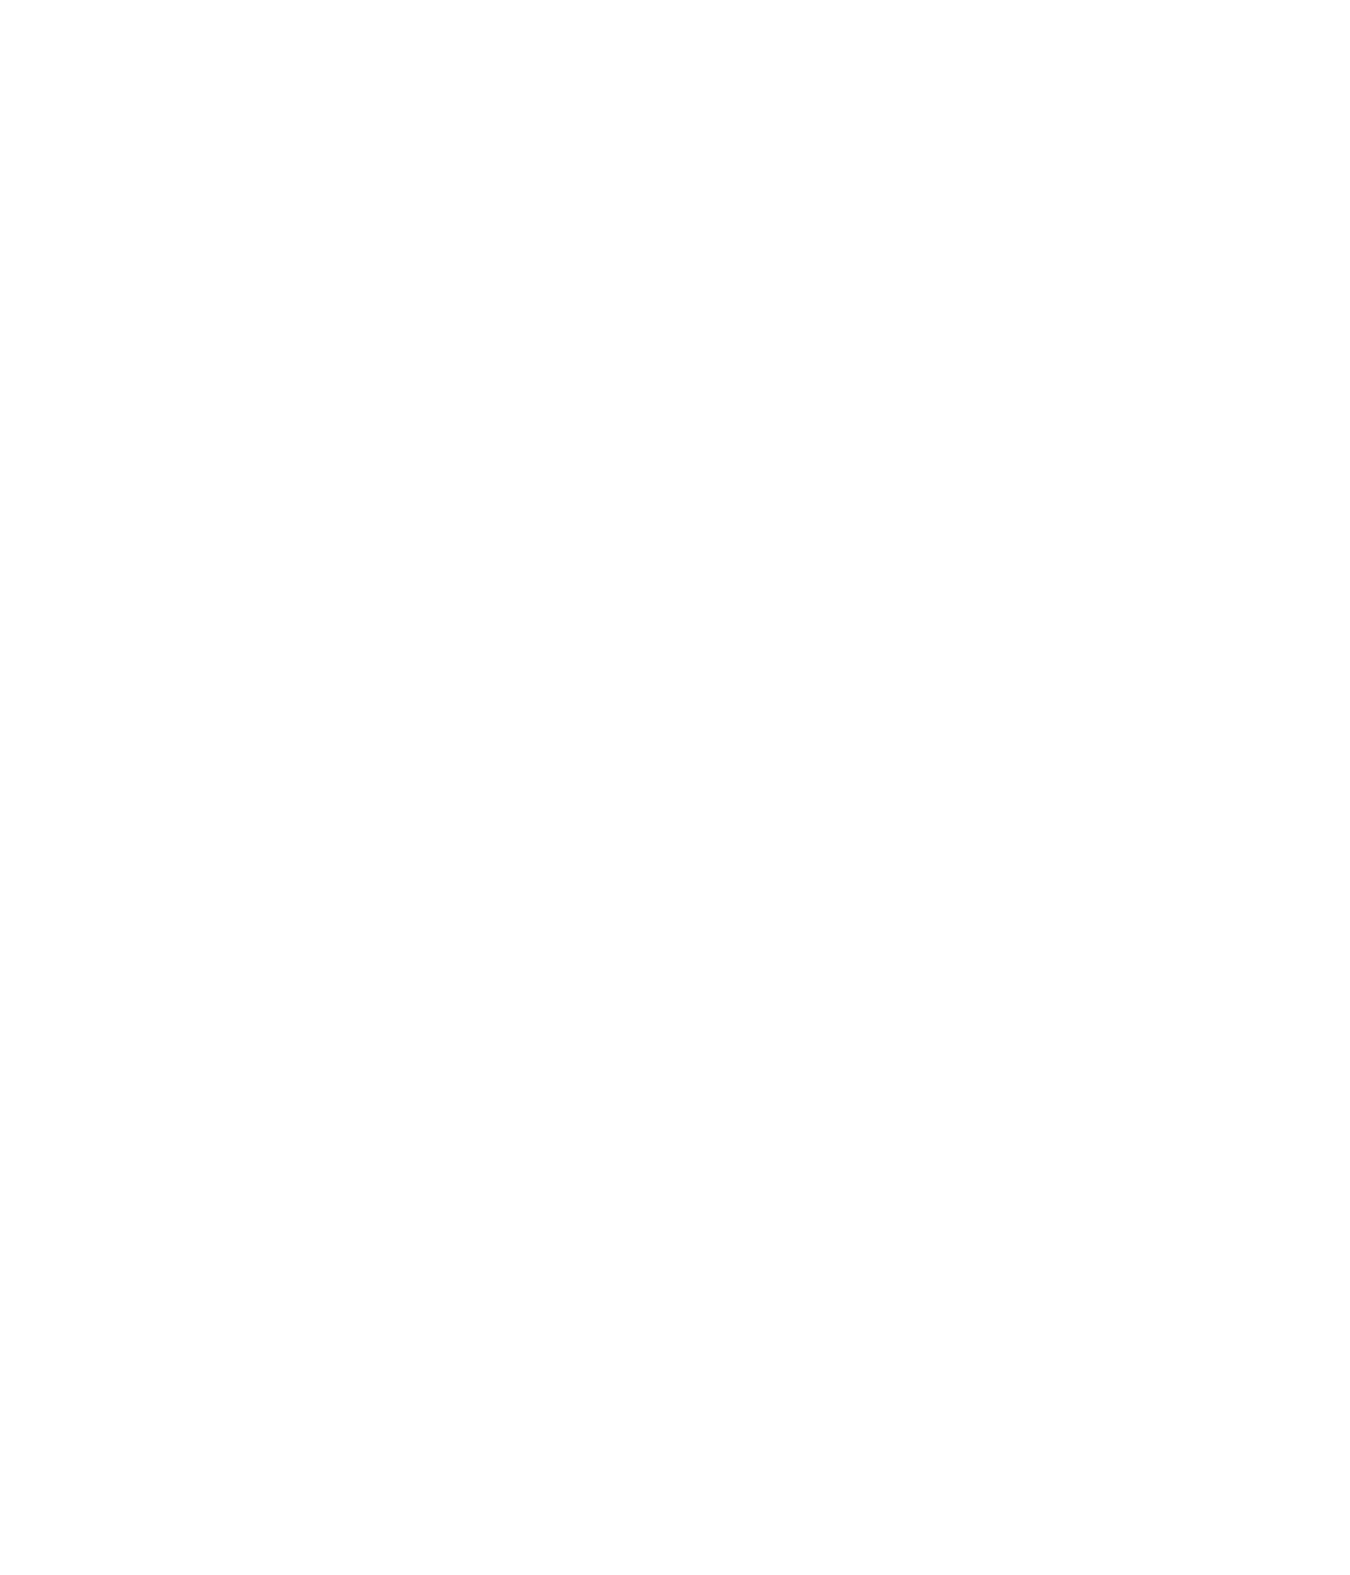 Play Clean logo with phone number: 1-877-752-9253.